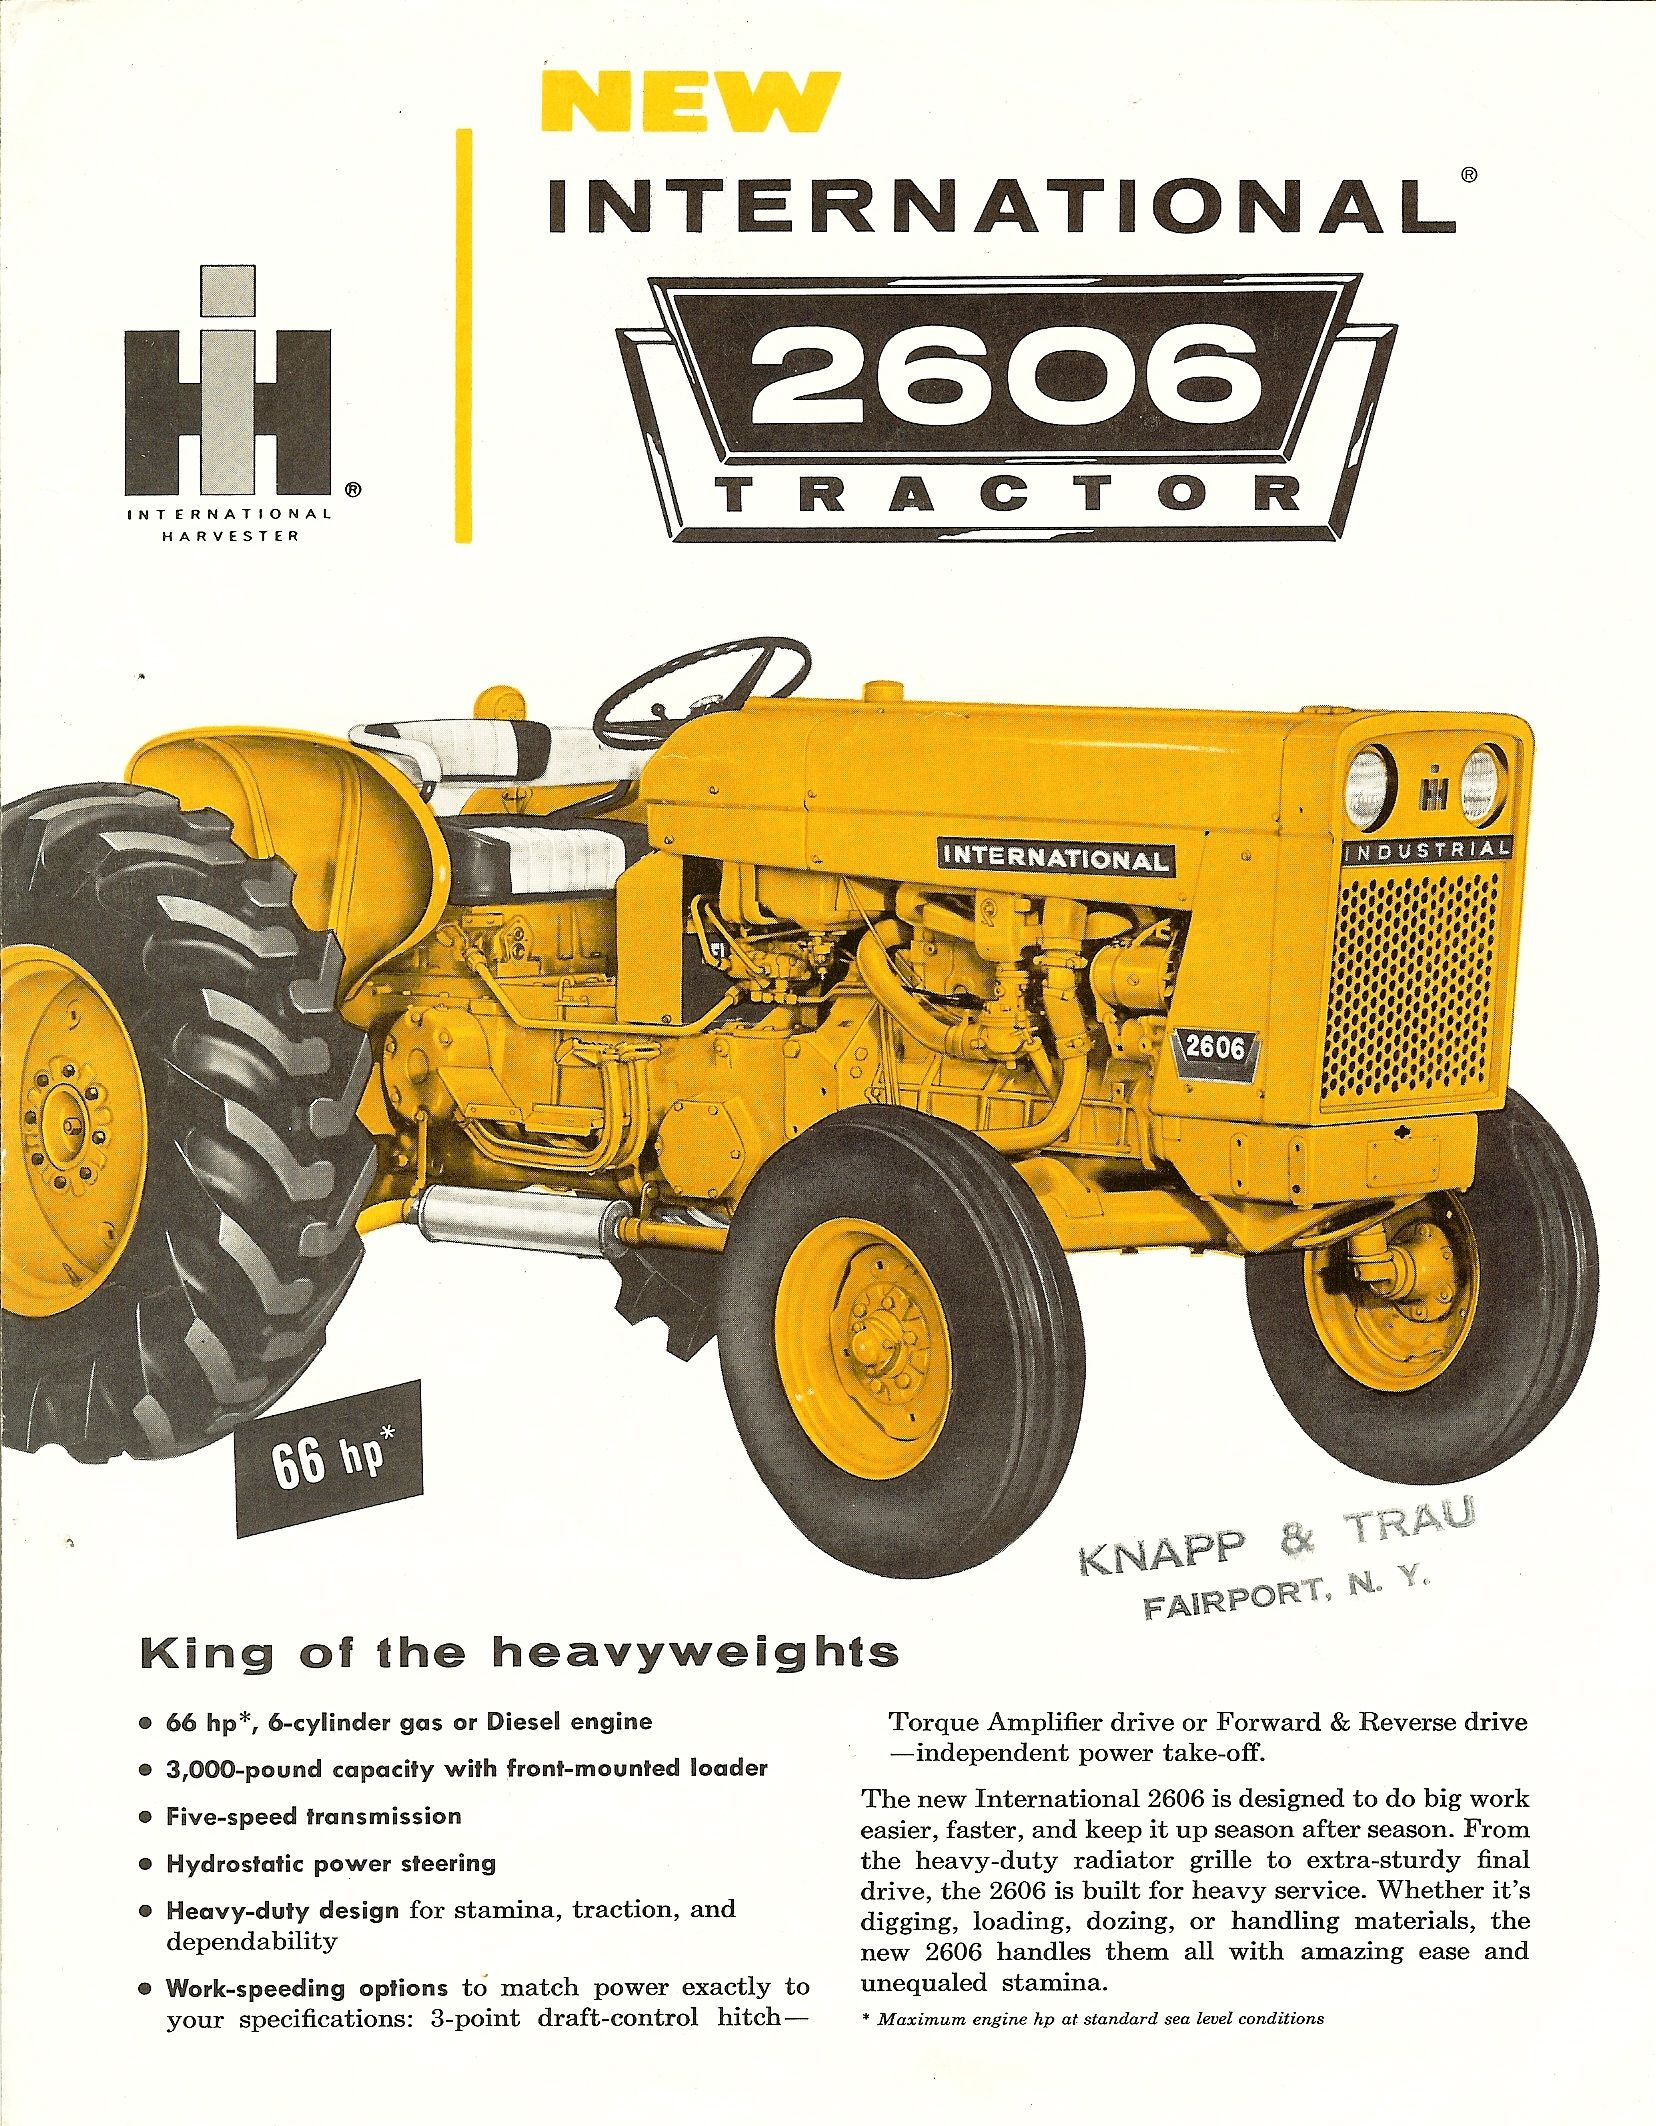 Industry industrial tractor cars